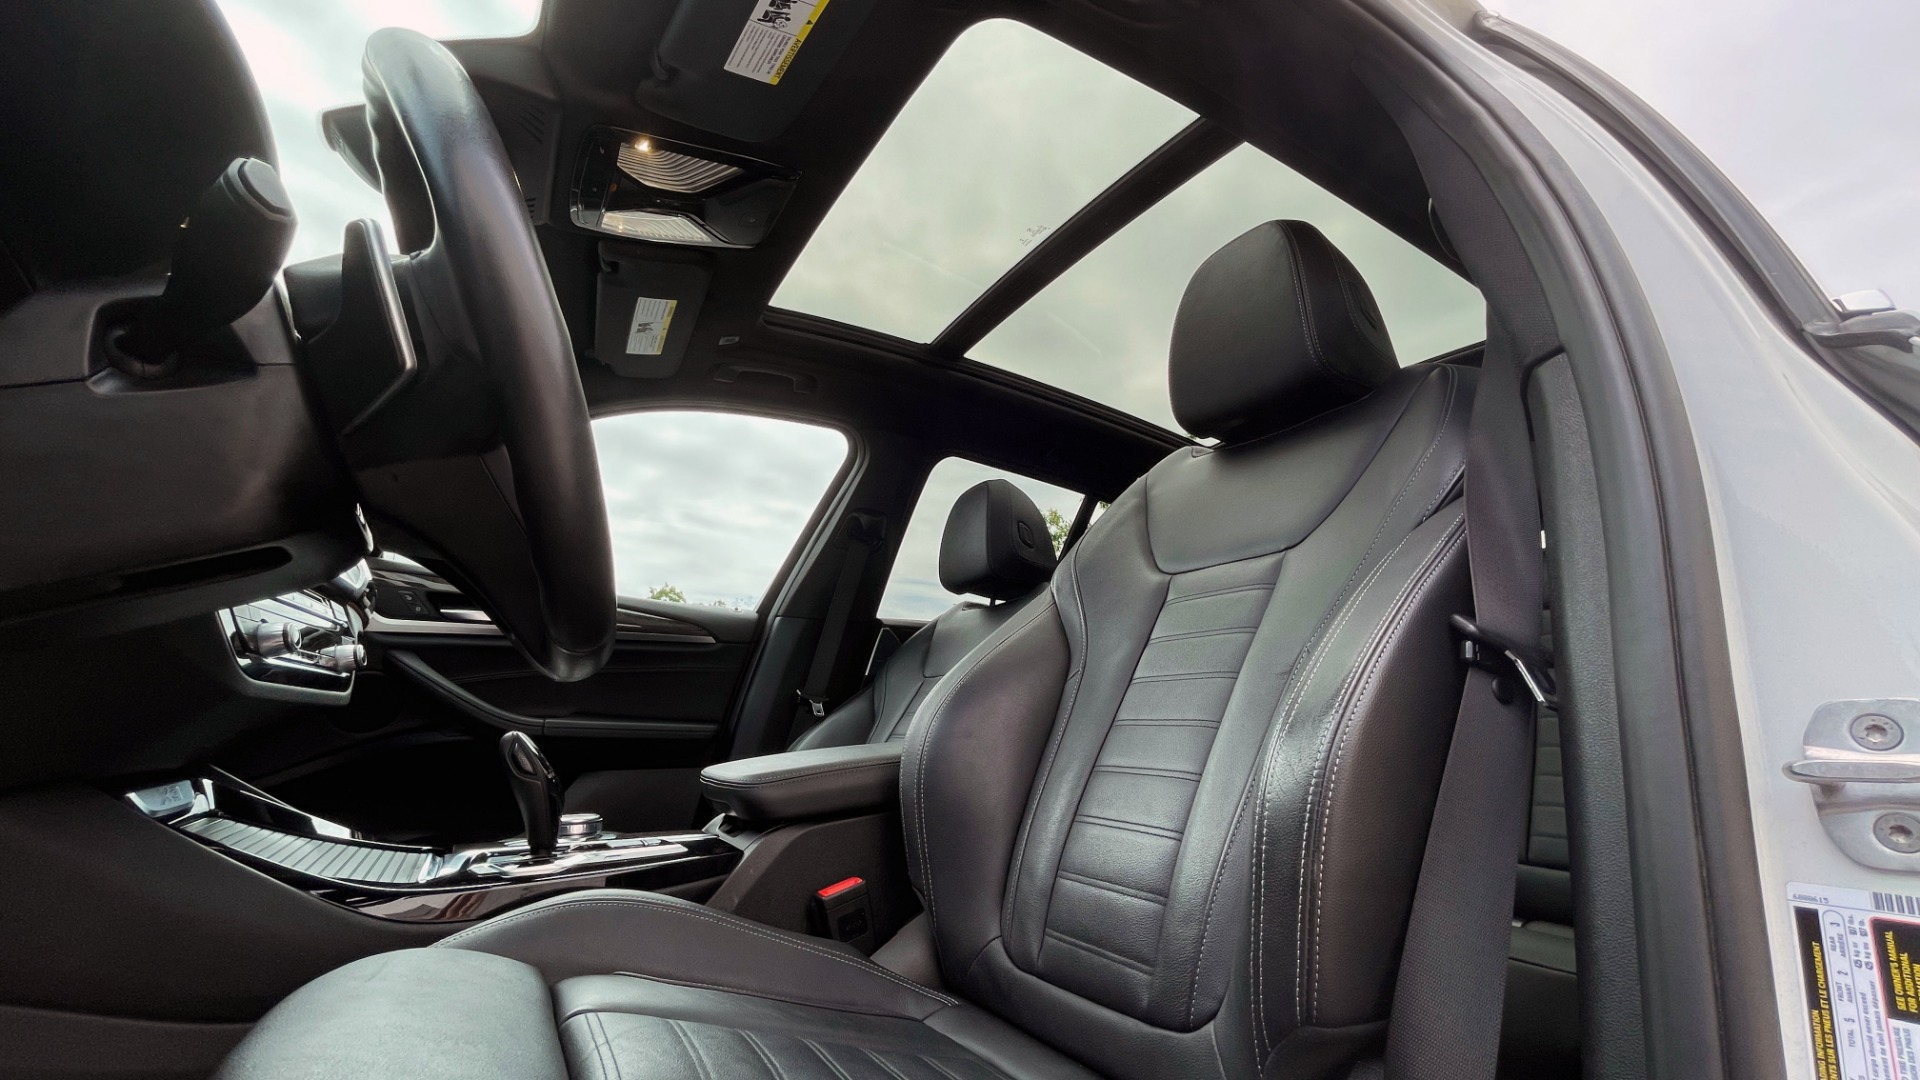 Used 2018 BMW X3 XDRIVE30I PREMIUM / NAV / DRVR ASST / CONV PKG / SUNROOF / REARVIEW for sale $32,695 at Formula Imports in Charlotte NC 28227 61